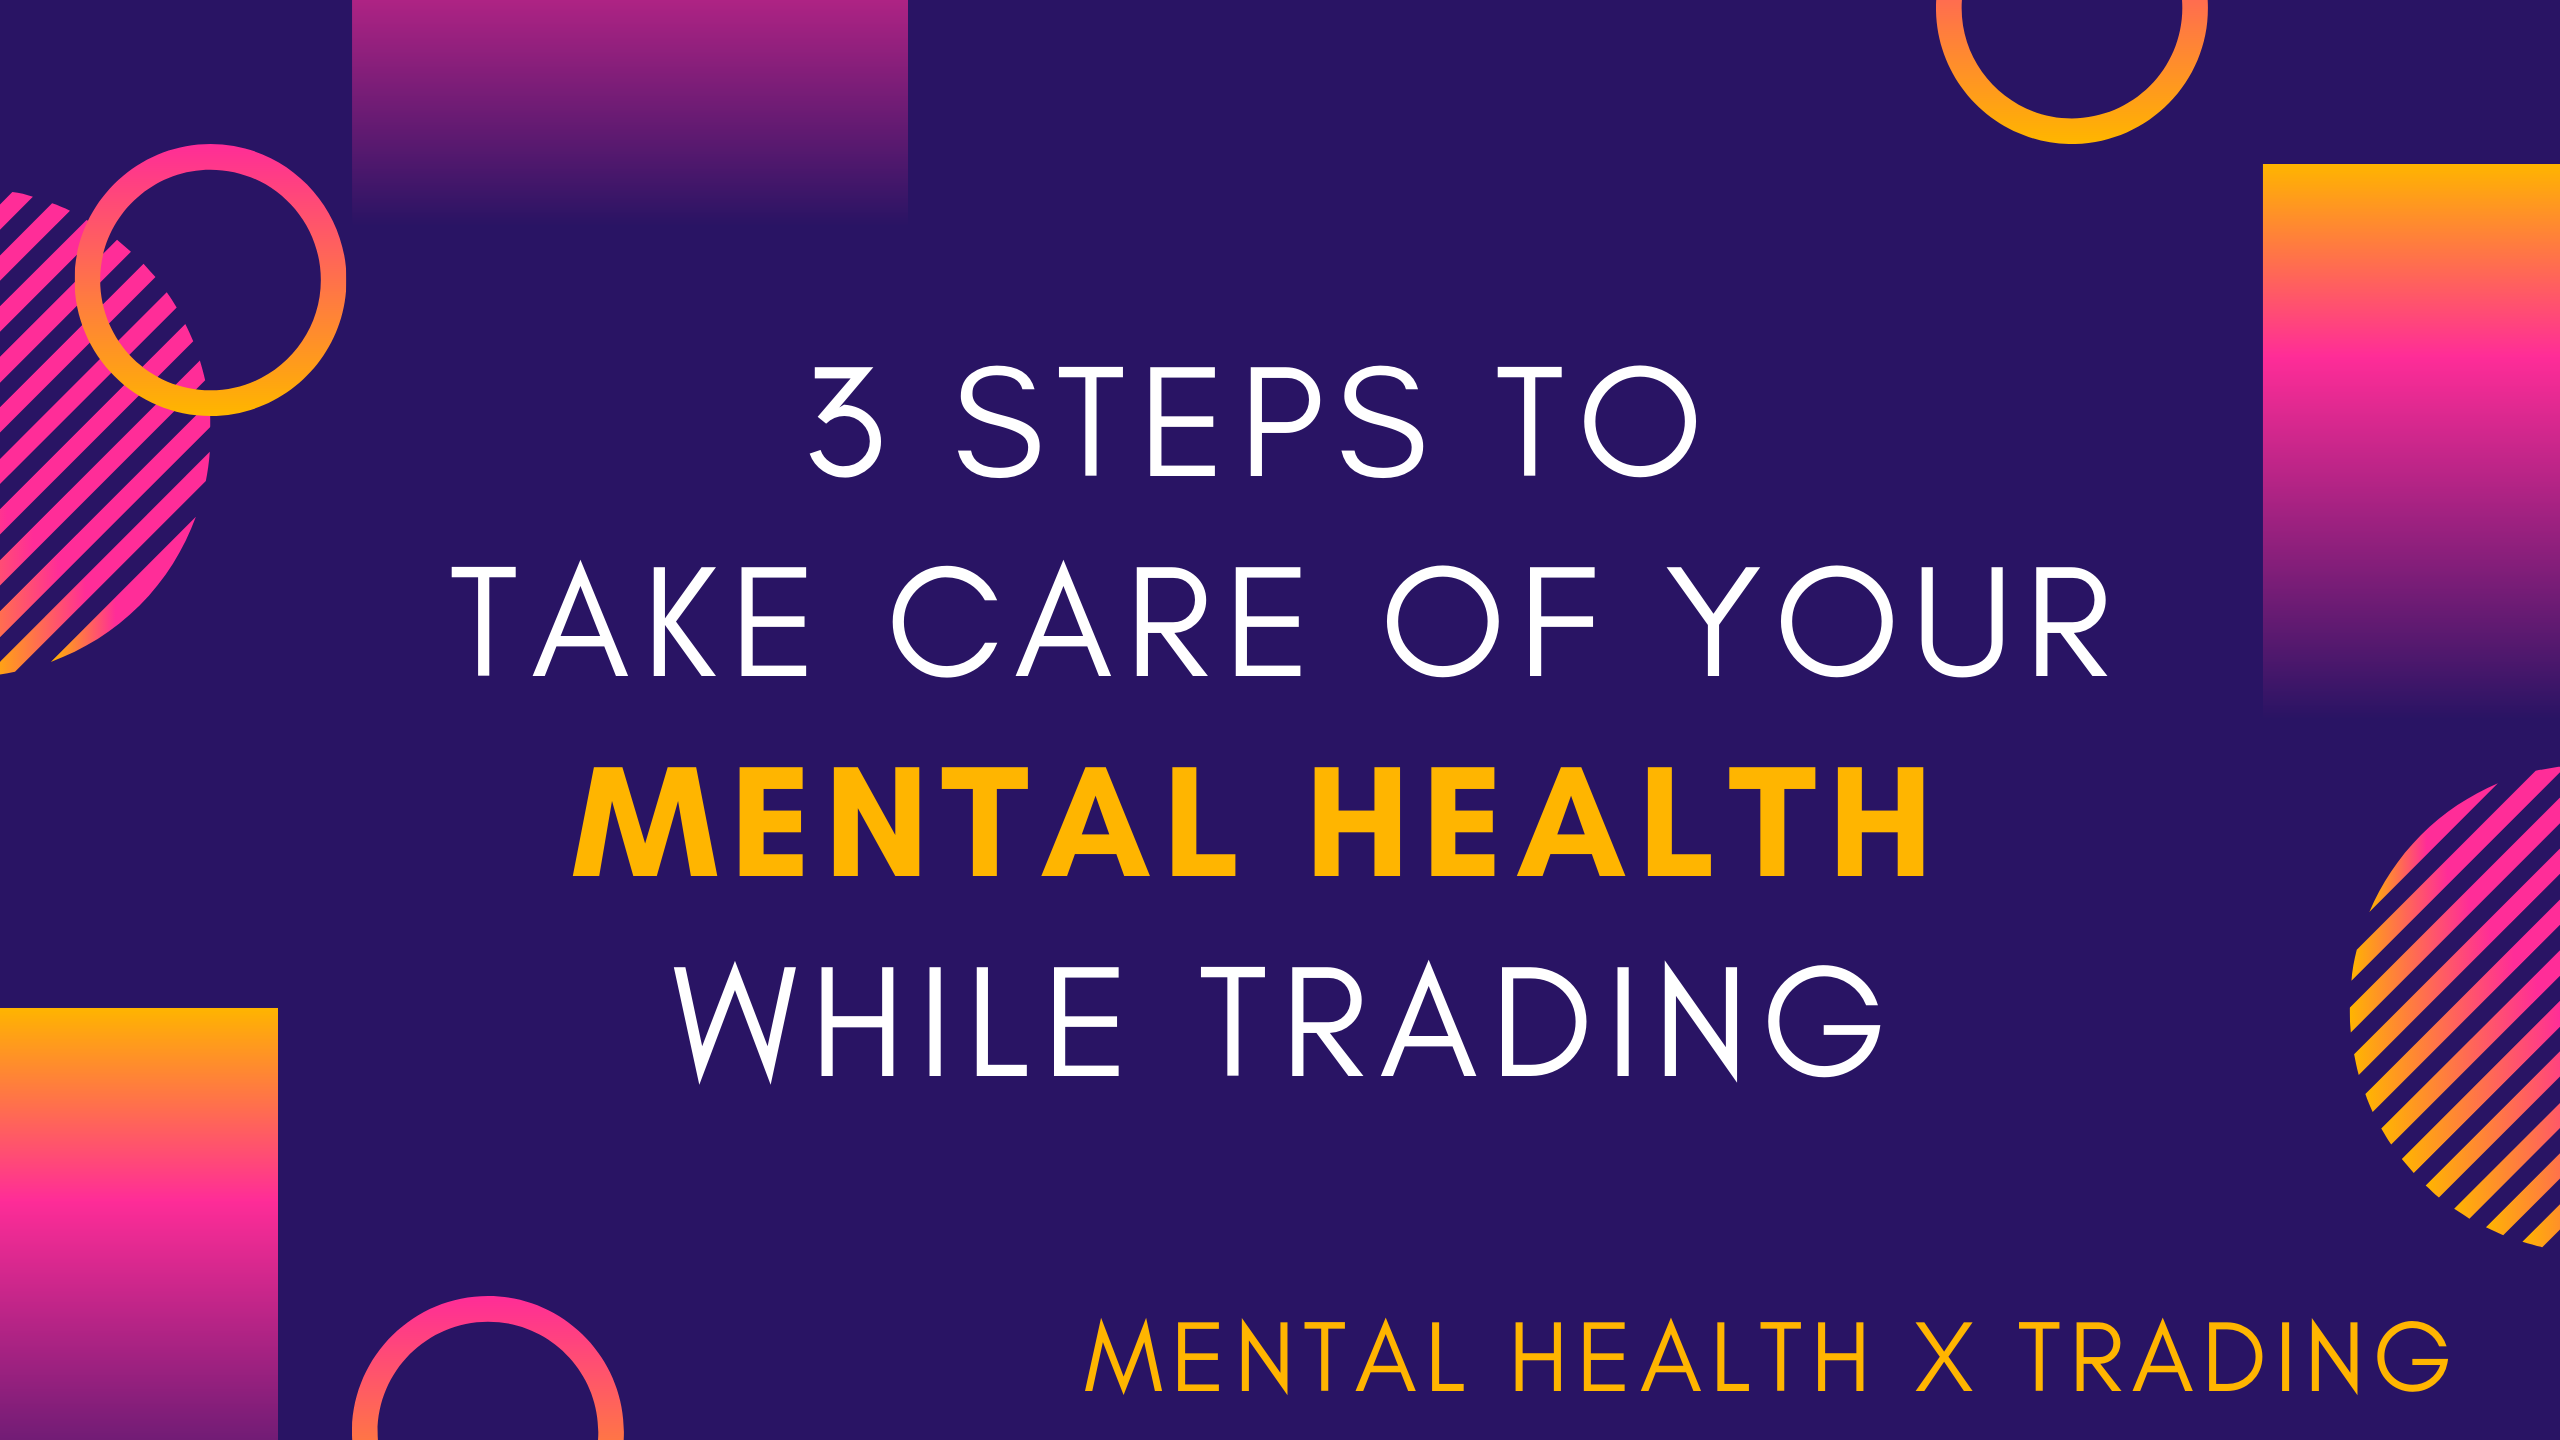 3 steps to take care of your mental health while trading